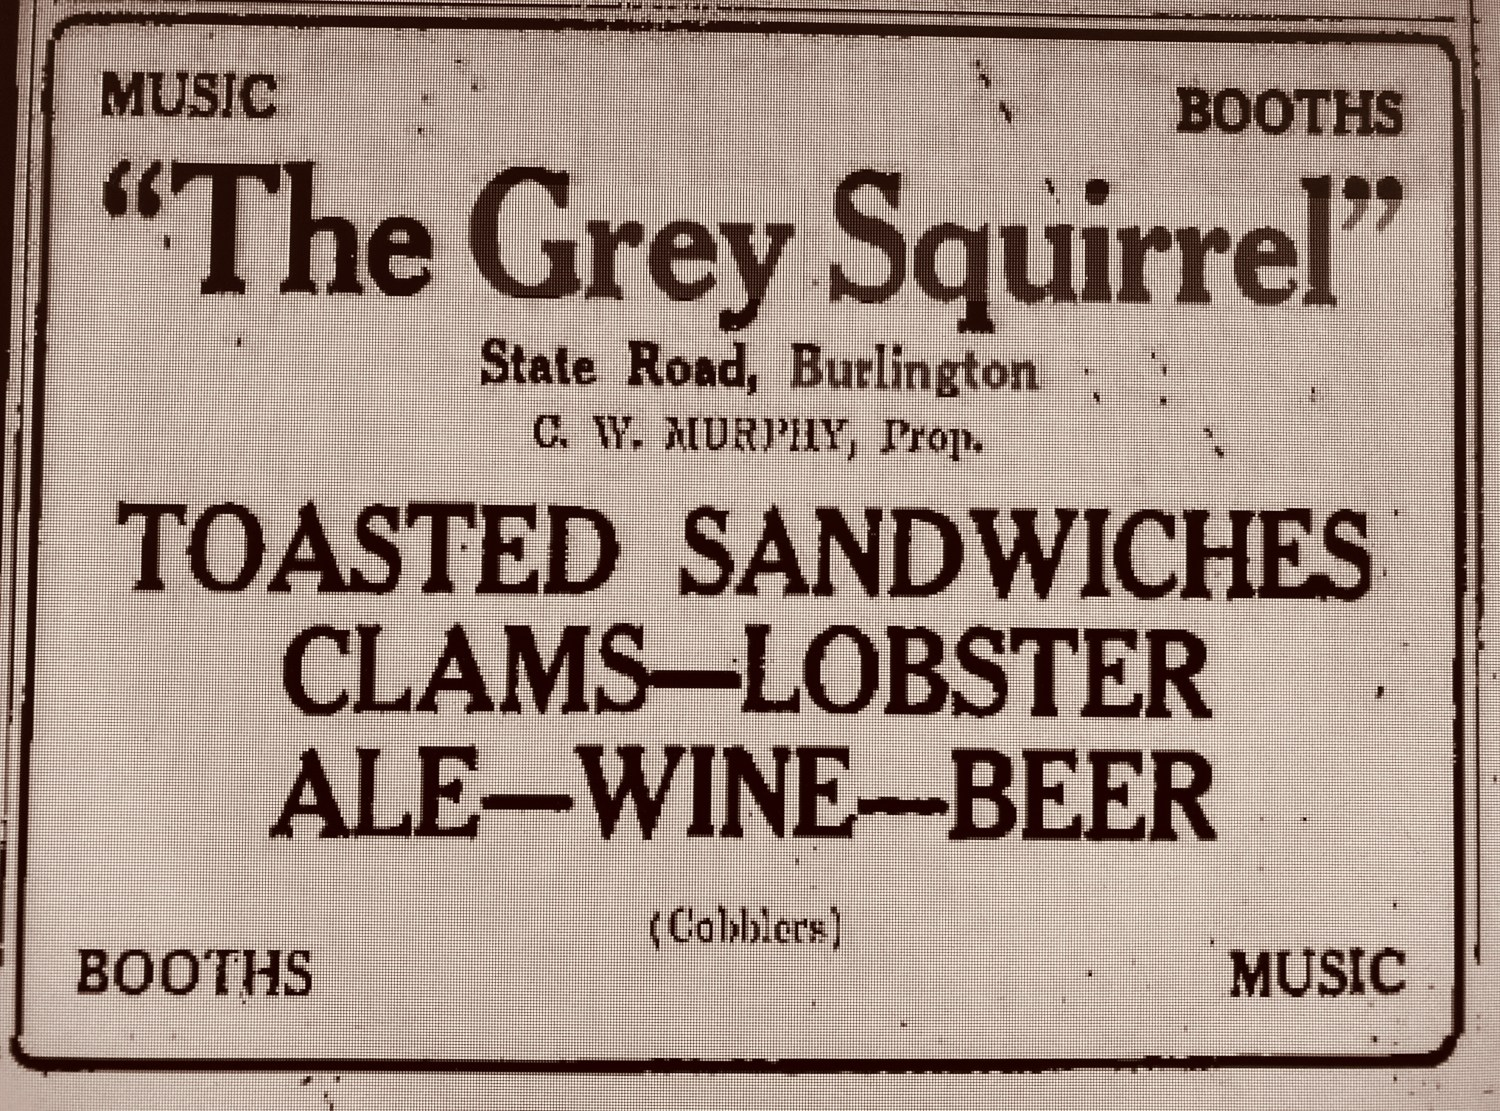 Grey Squirrel ad 1935 Burlington, MA